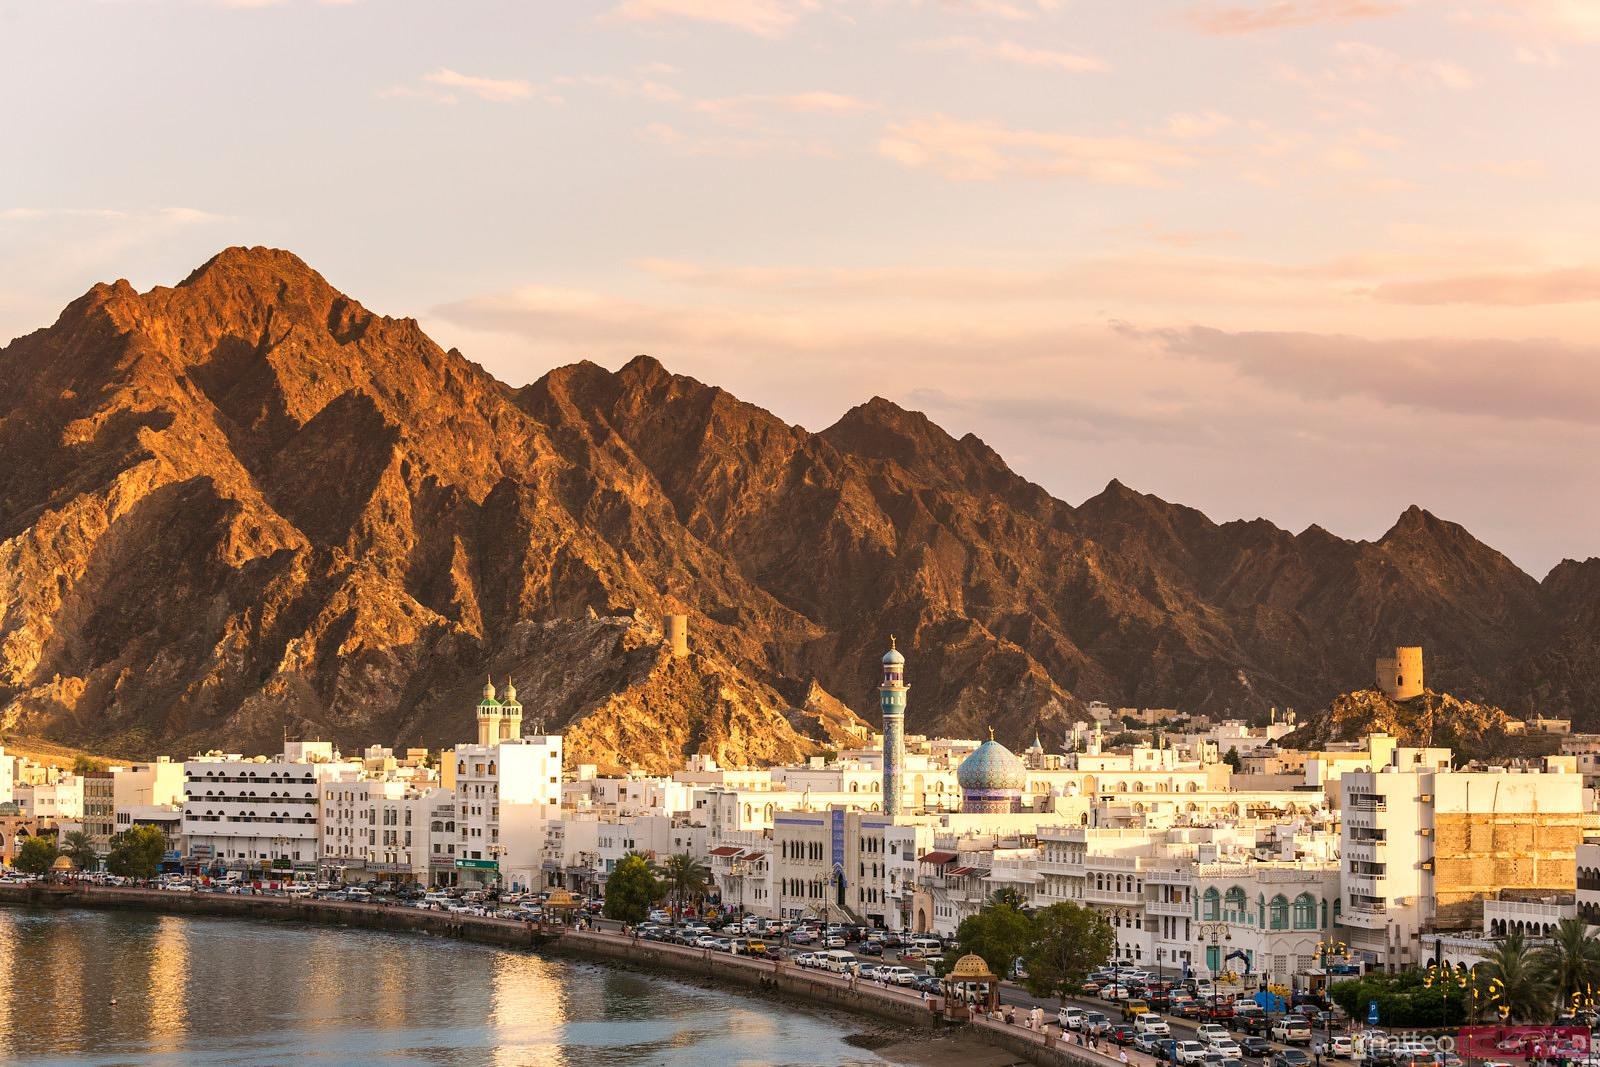 View of Muscat town at sunset, Oman